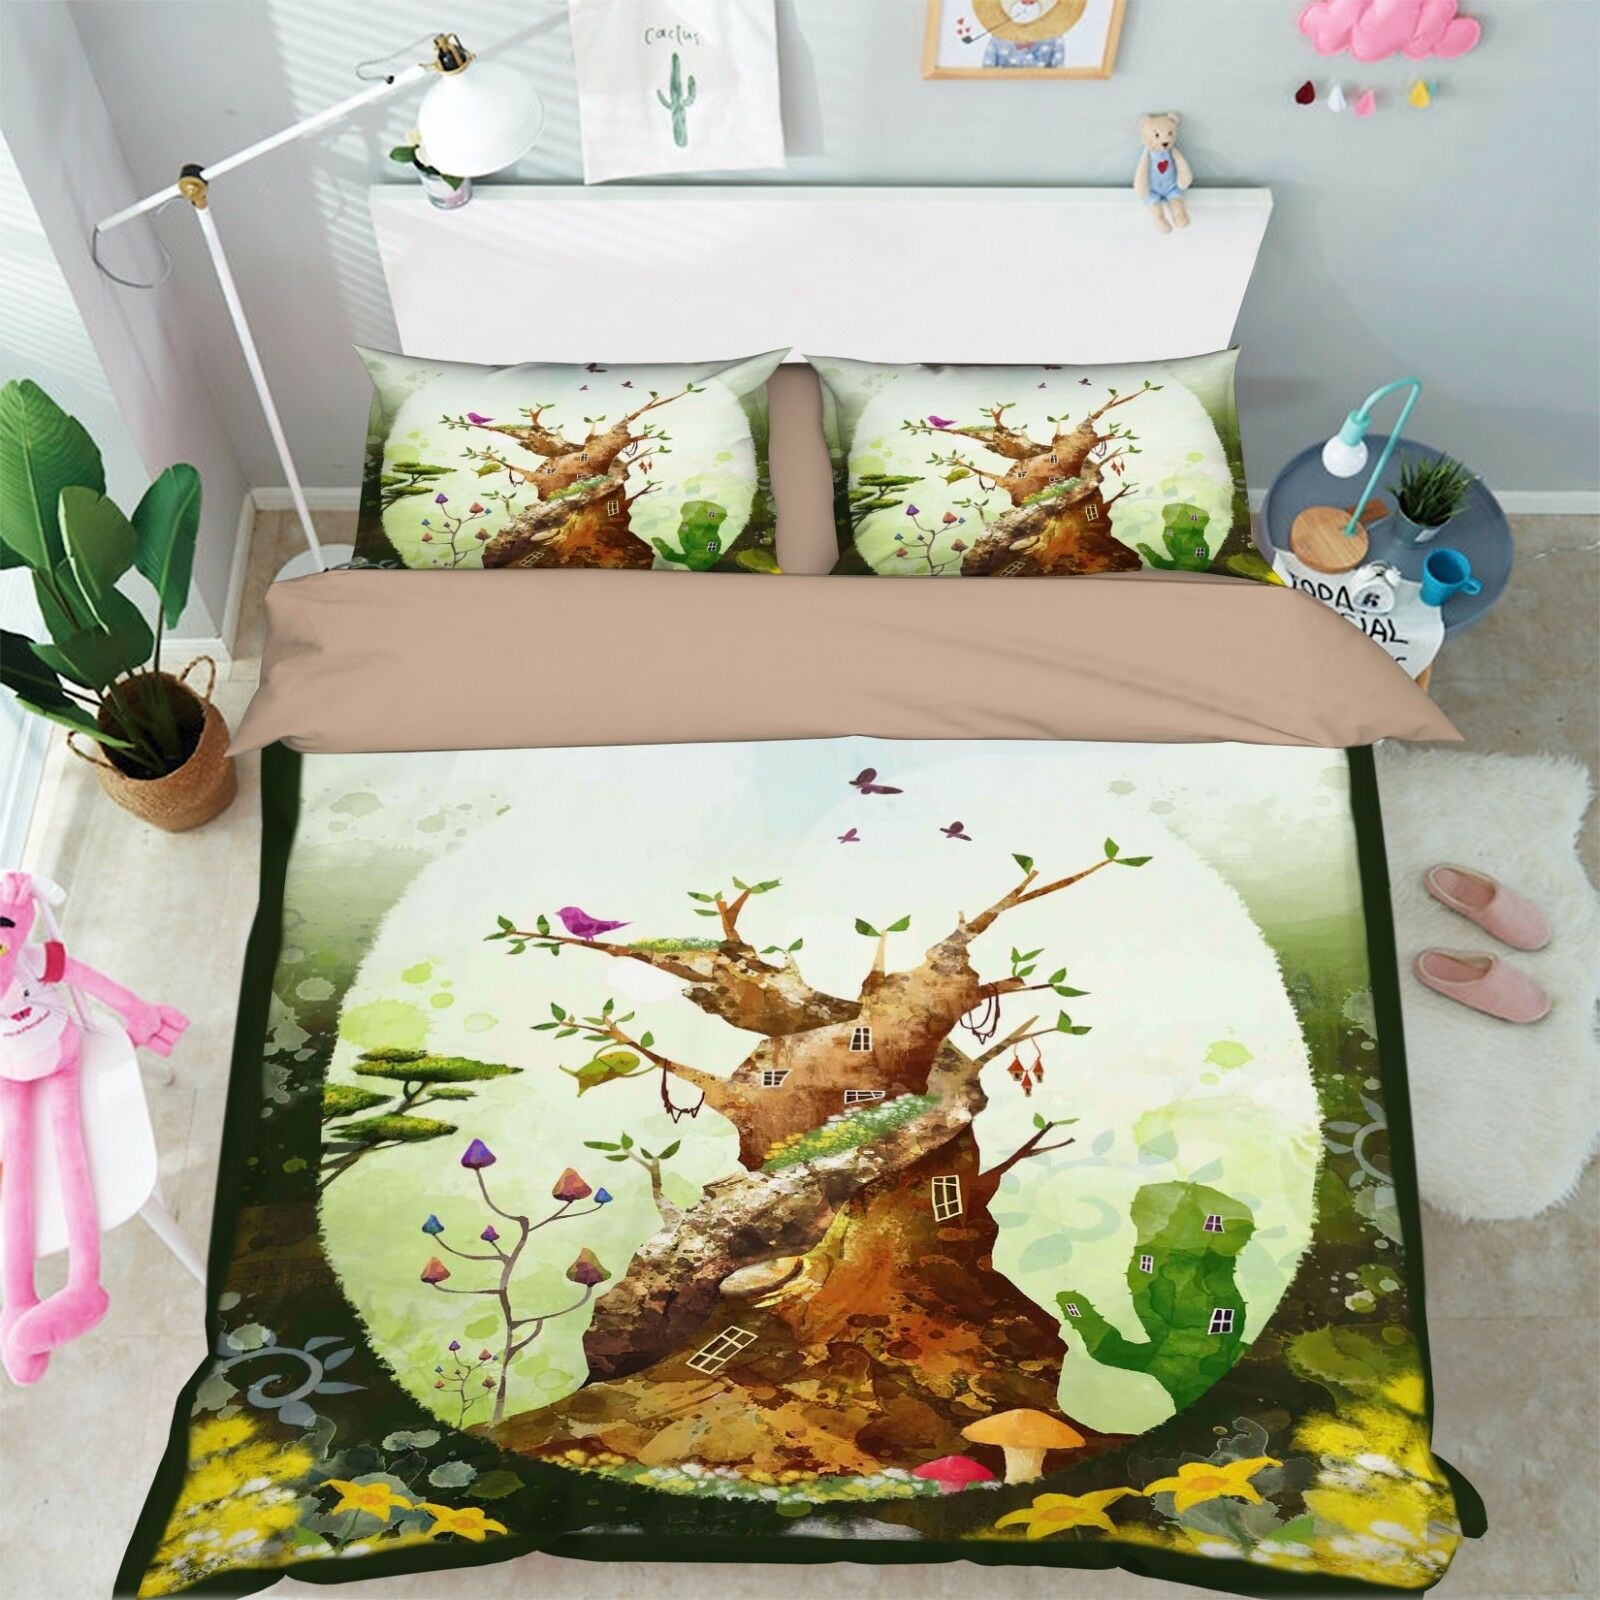 3D Trunk Painted 906 Bed Pillowcases Quilt Duvet Cover Set Single Queen UK Kyra